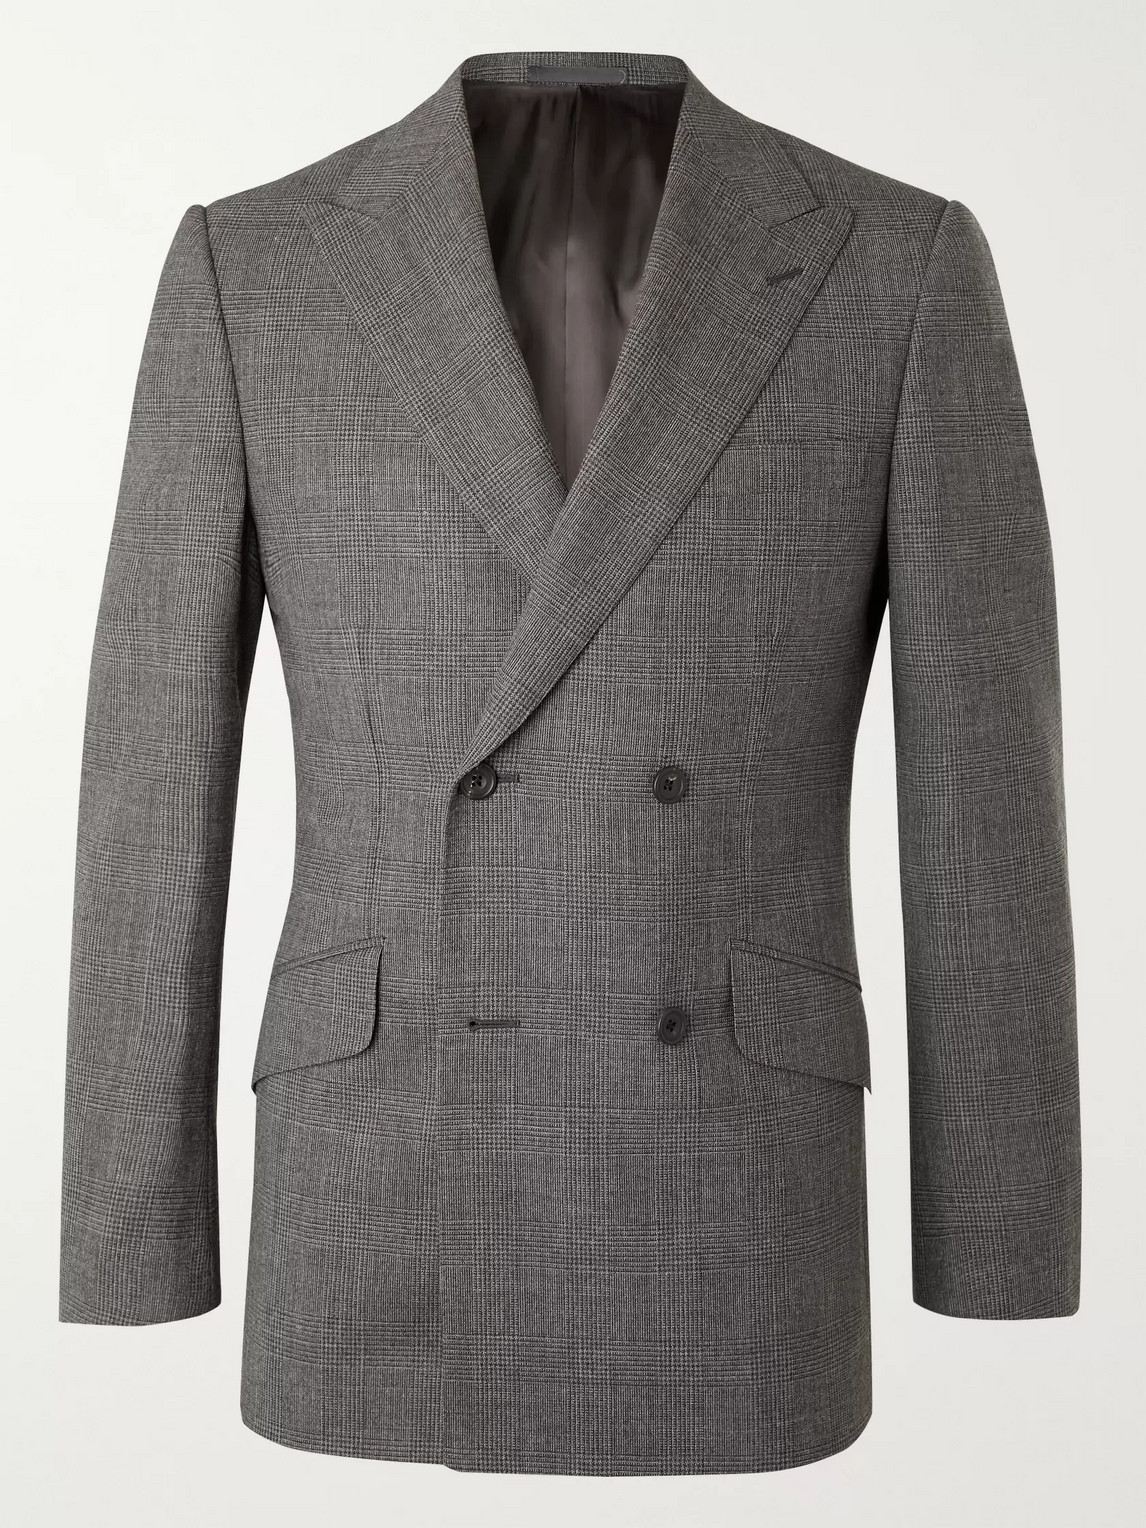 Kingsman Archie Reid Slim-fit Double-breasted Prince Of Wales Checked Wool Suit Jacket In Gray